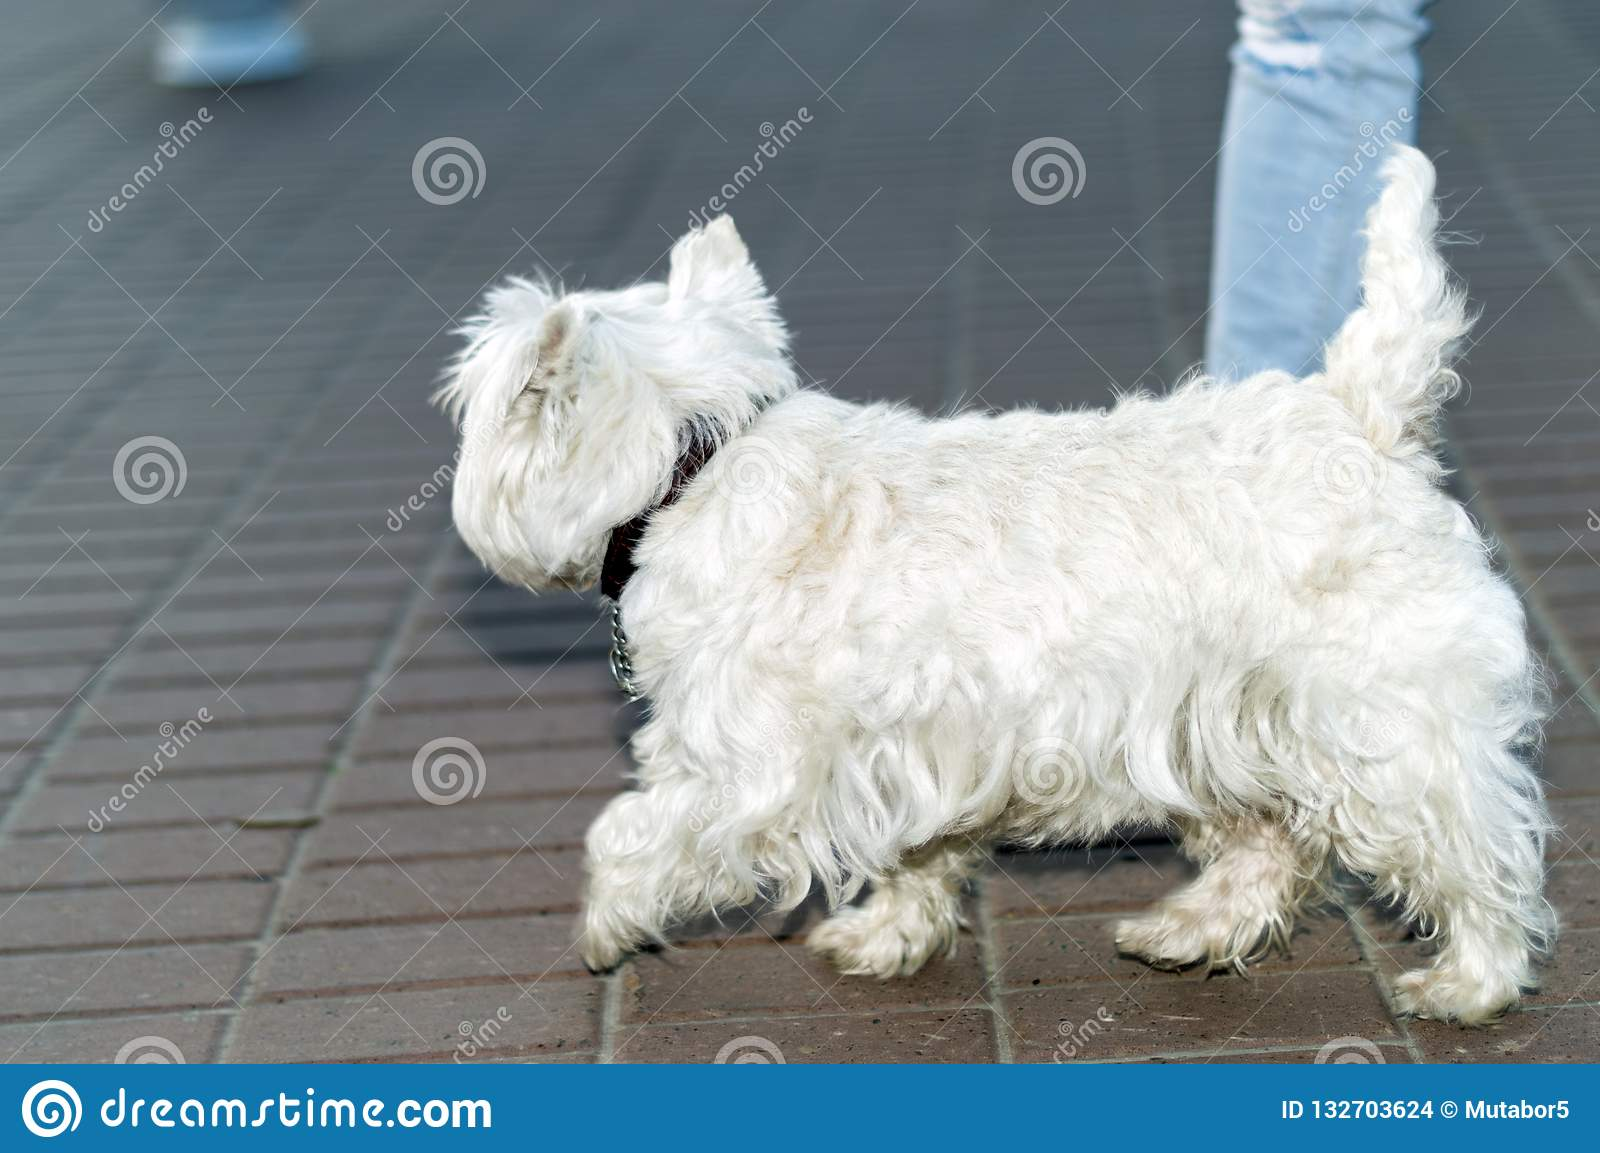 One and a half month puppy - half-breed Labrador and Samoyed dog